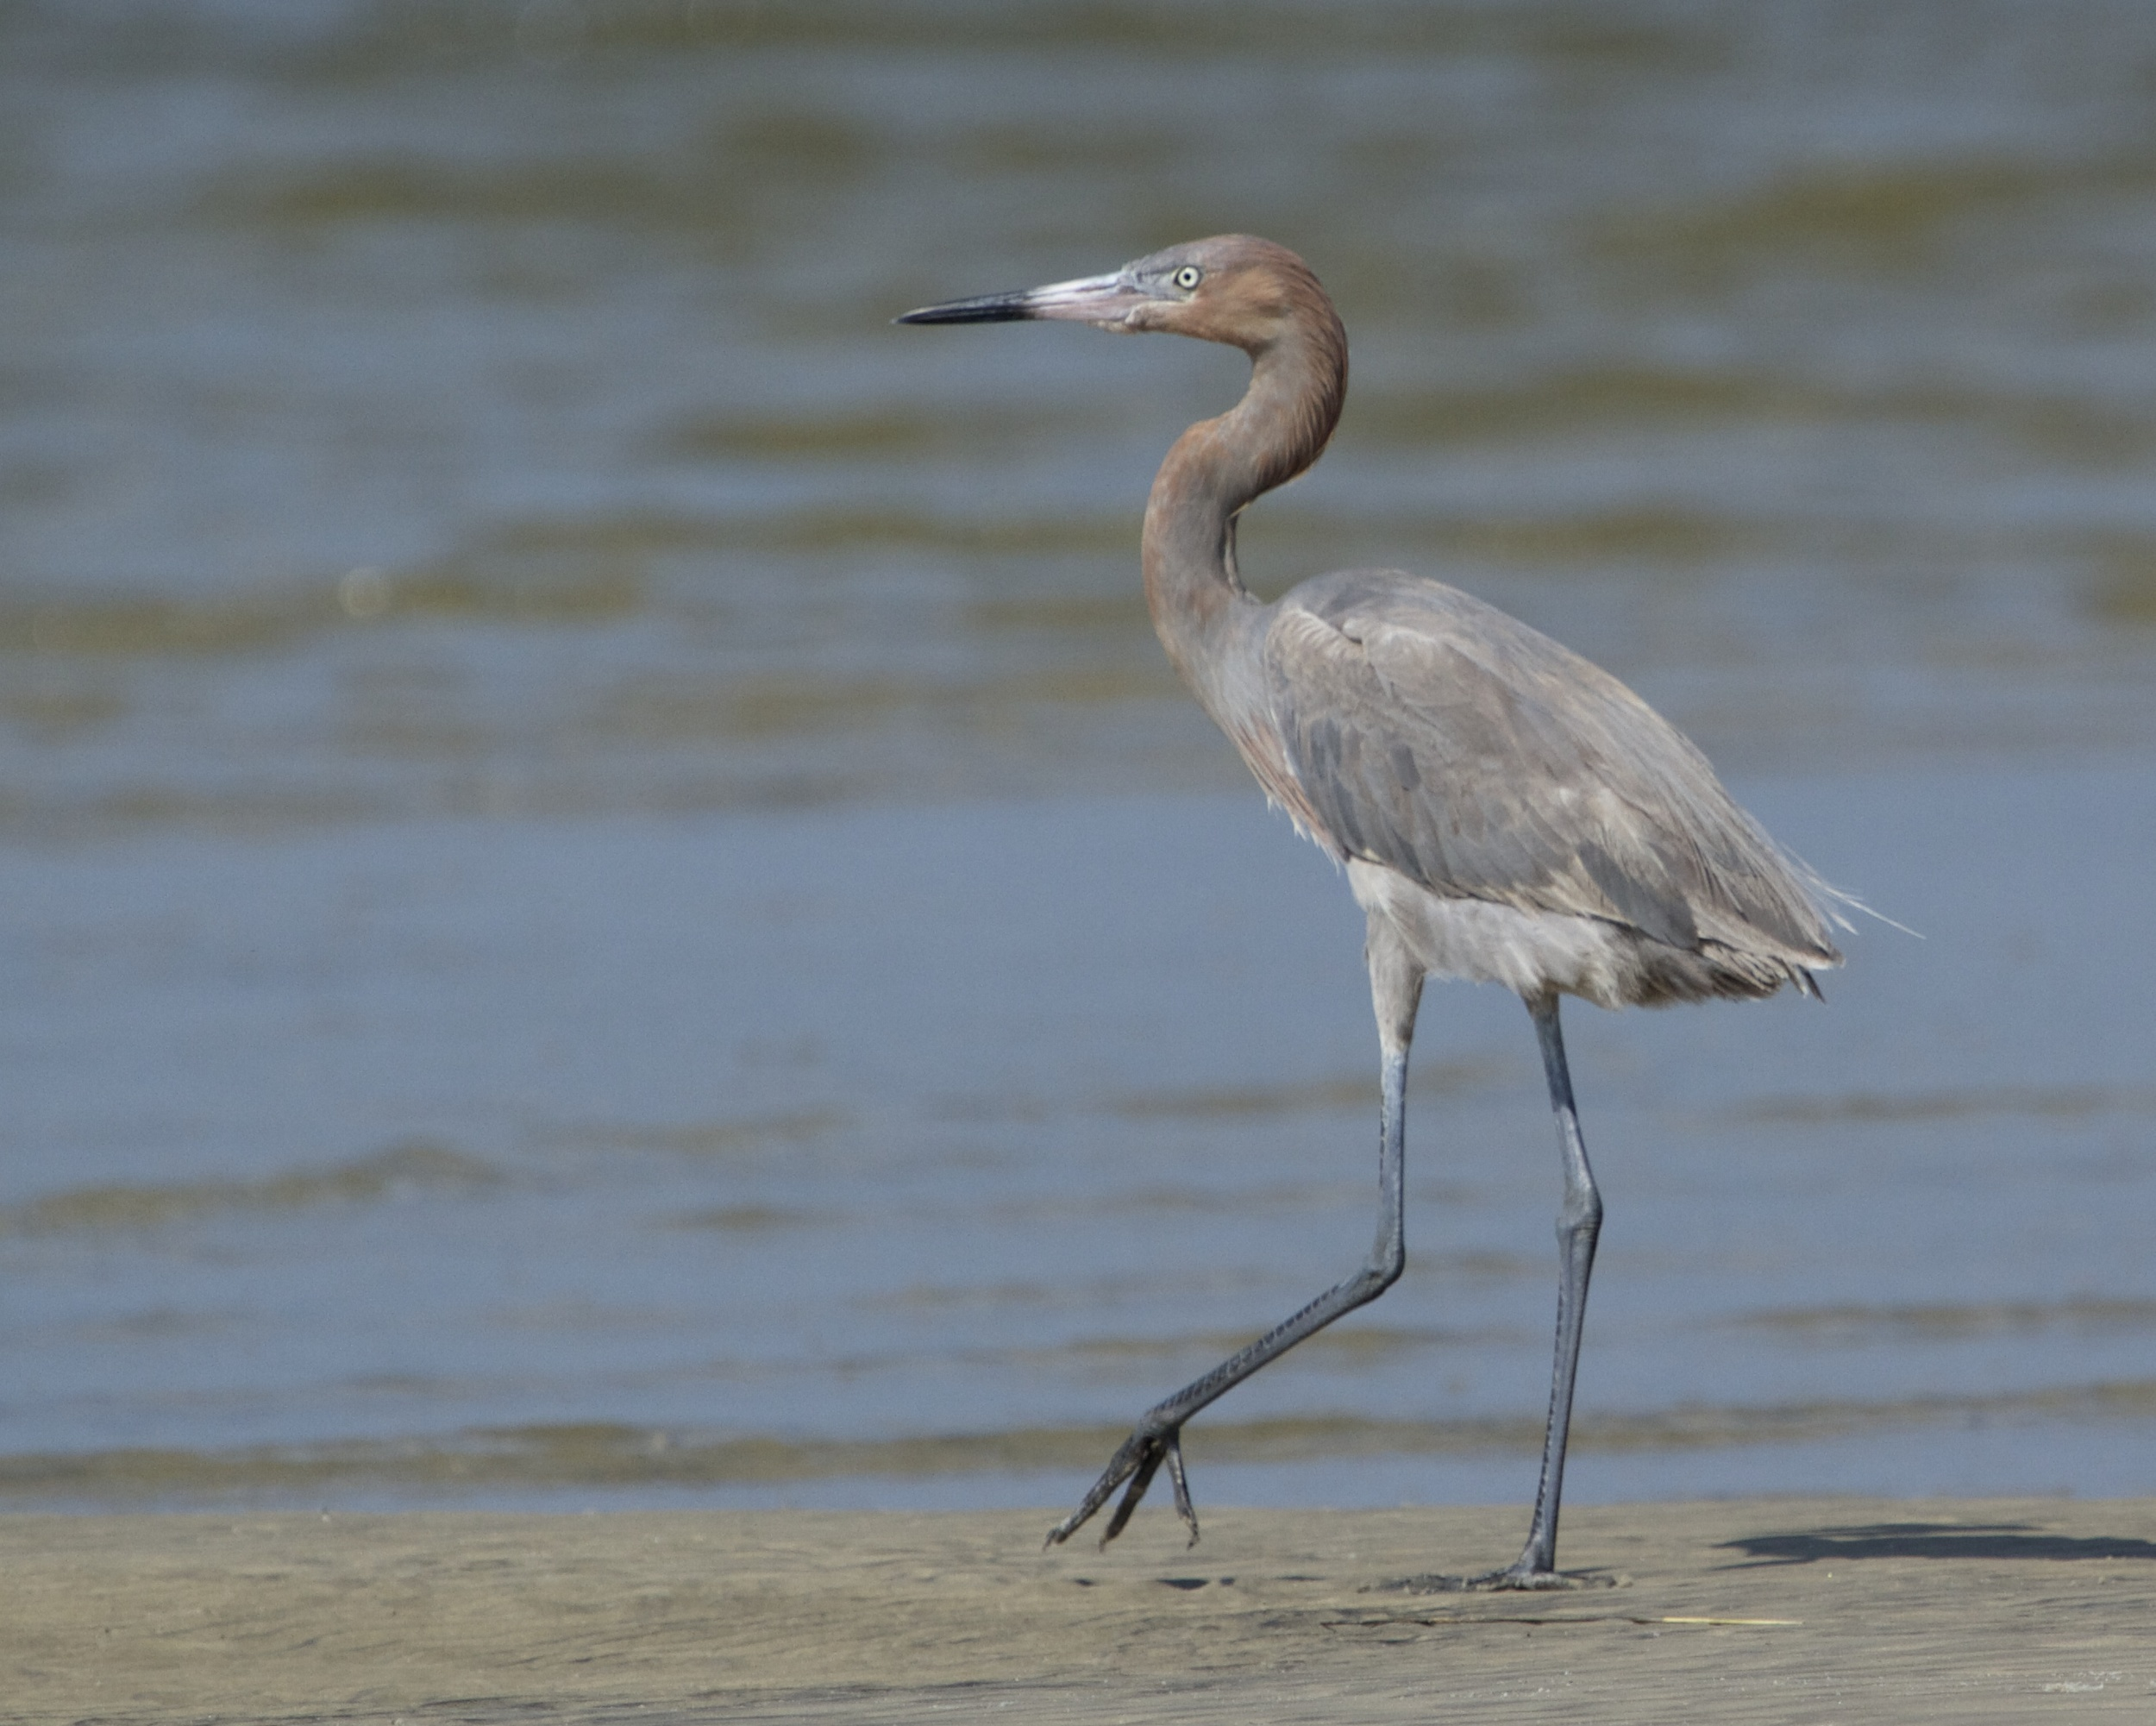 A Reddish Egret prowls the beach. My first sighting!